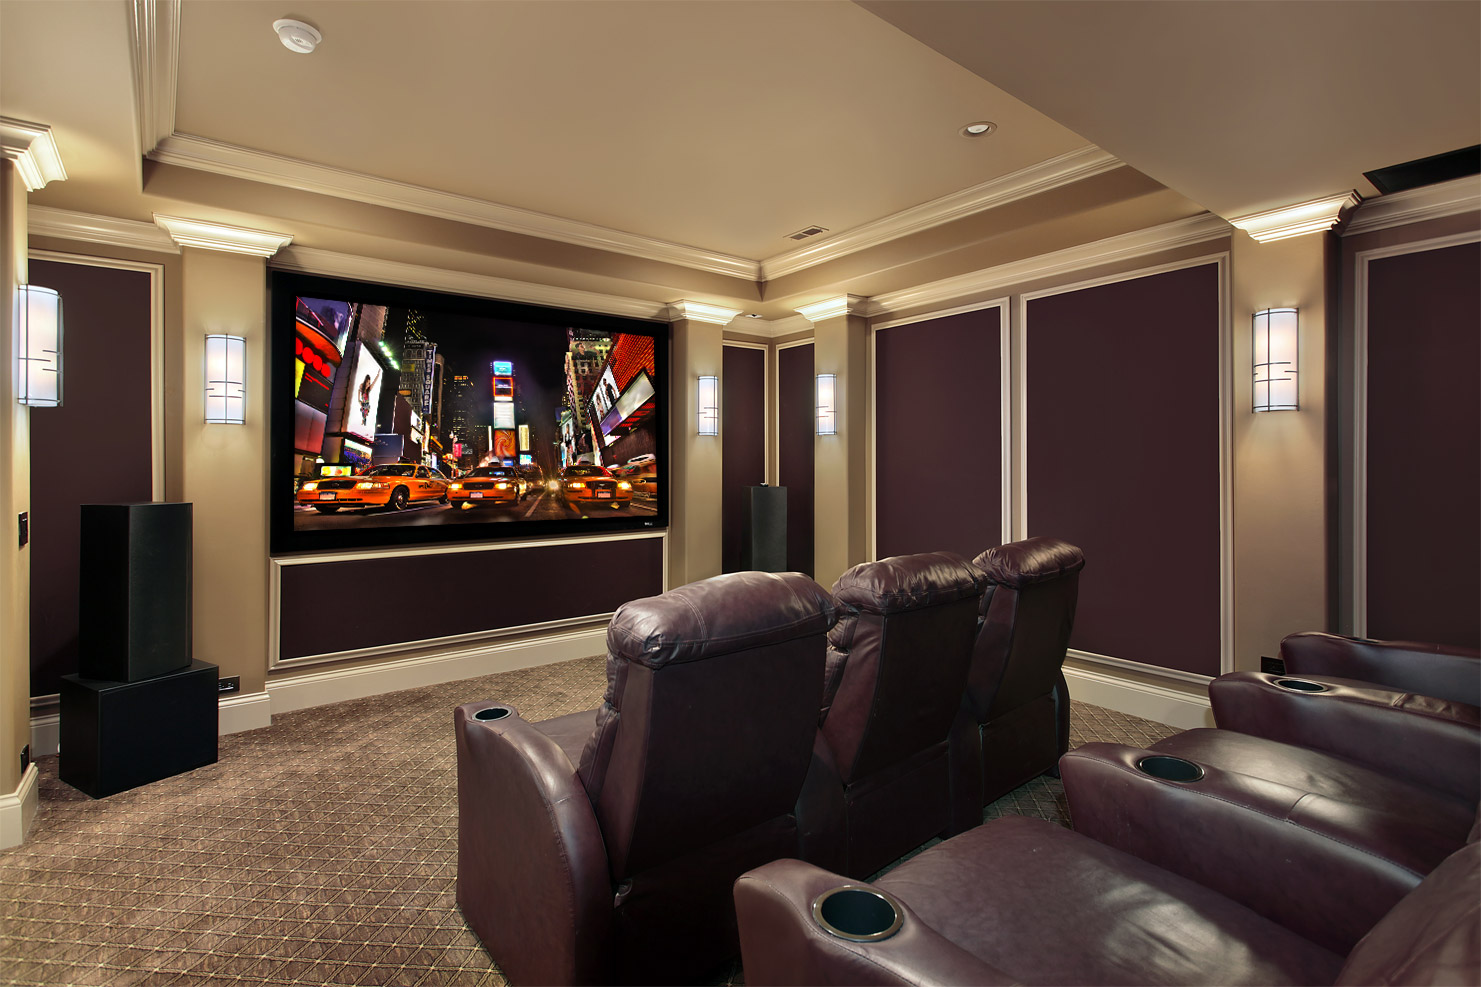 Home Theater System Idea 1 Uts Florida Llc